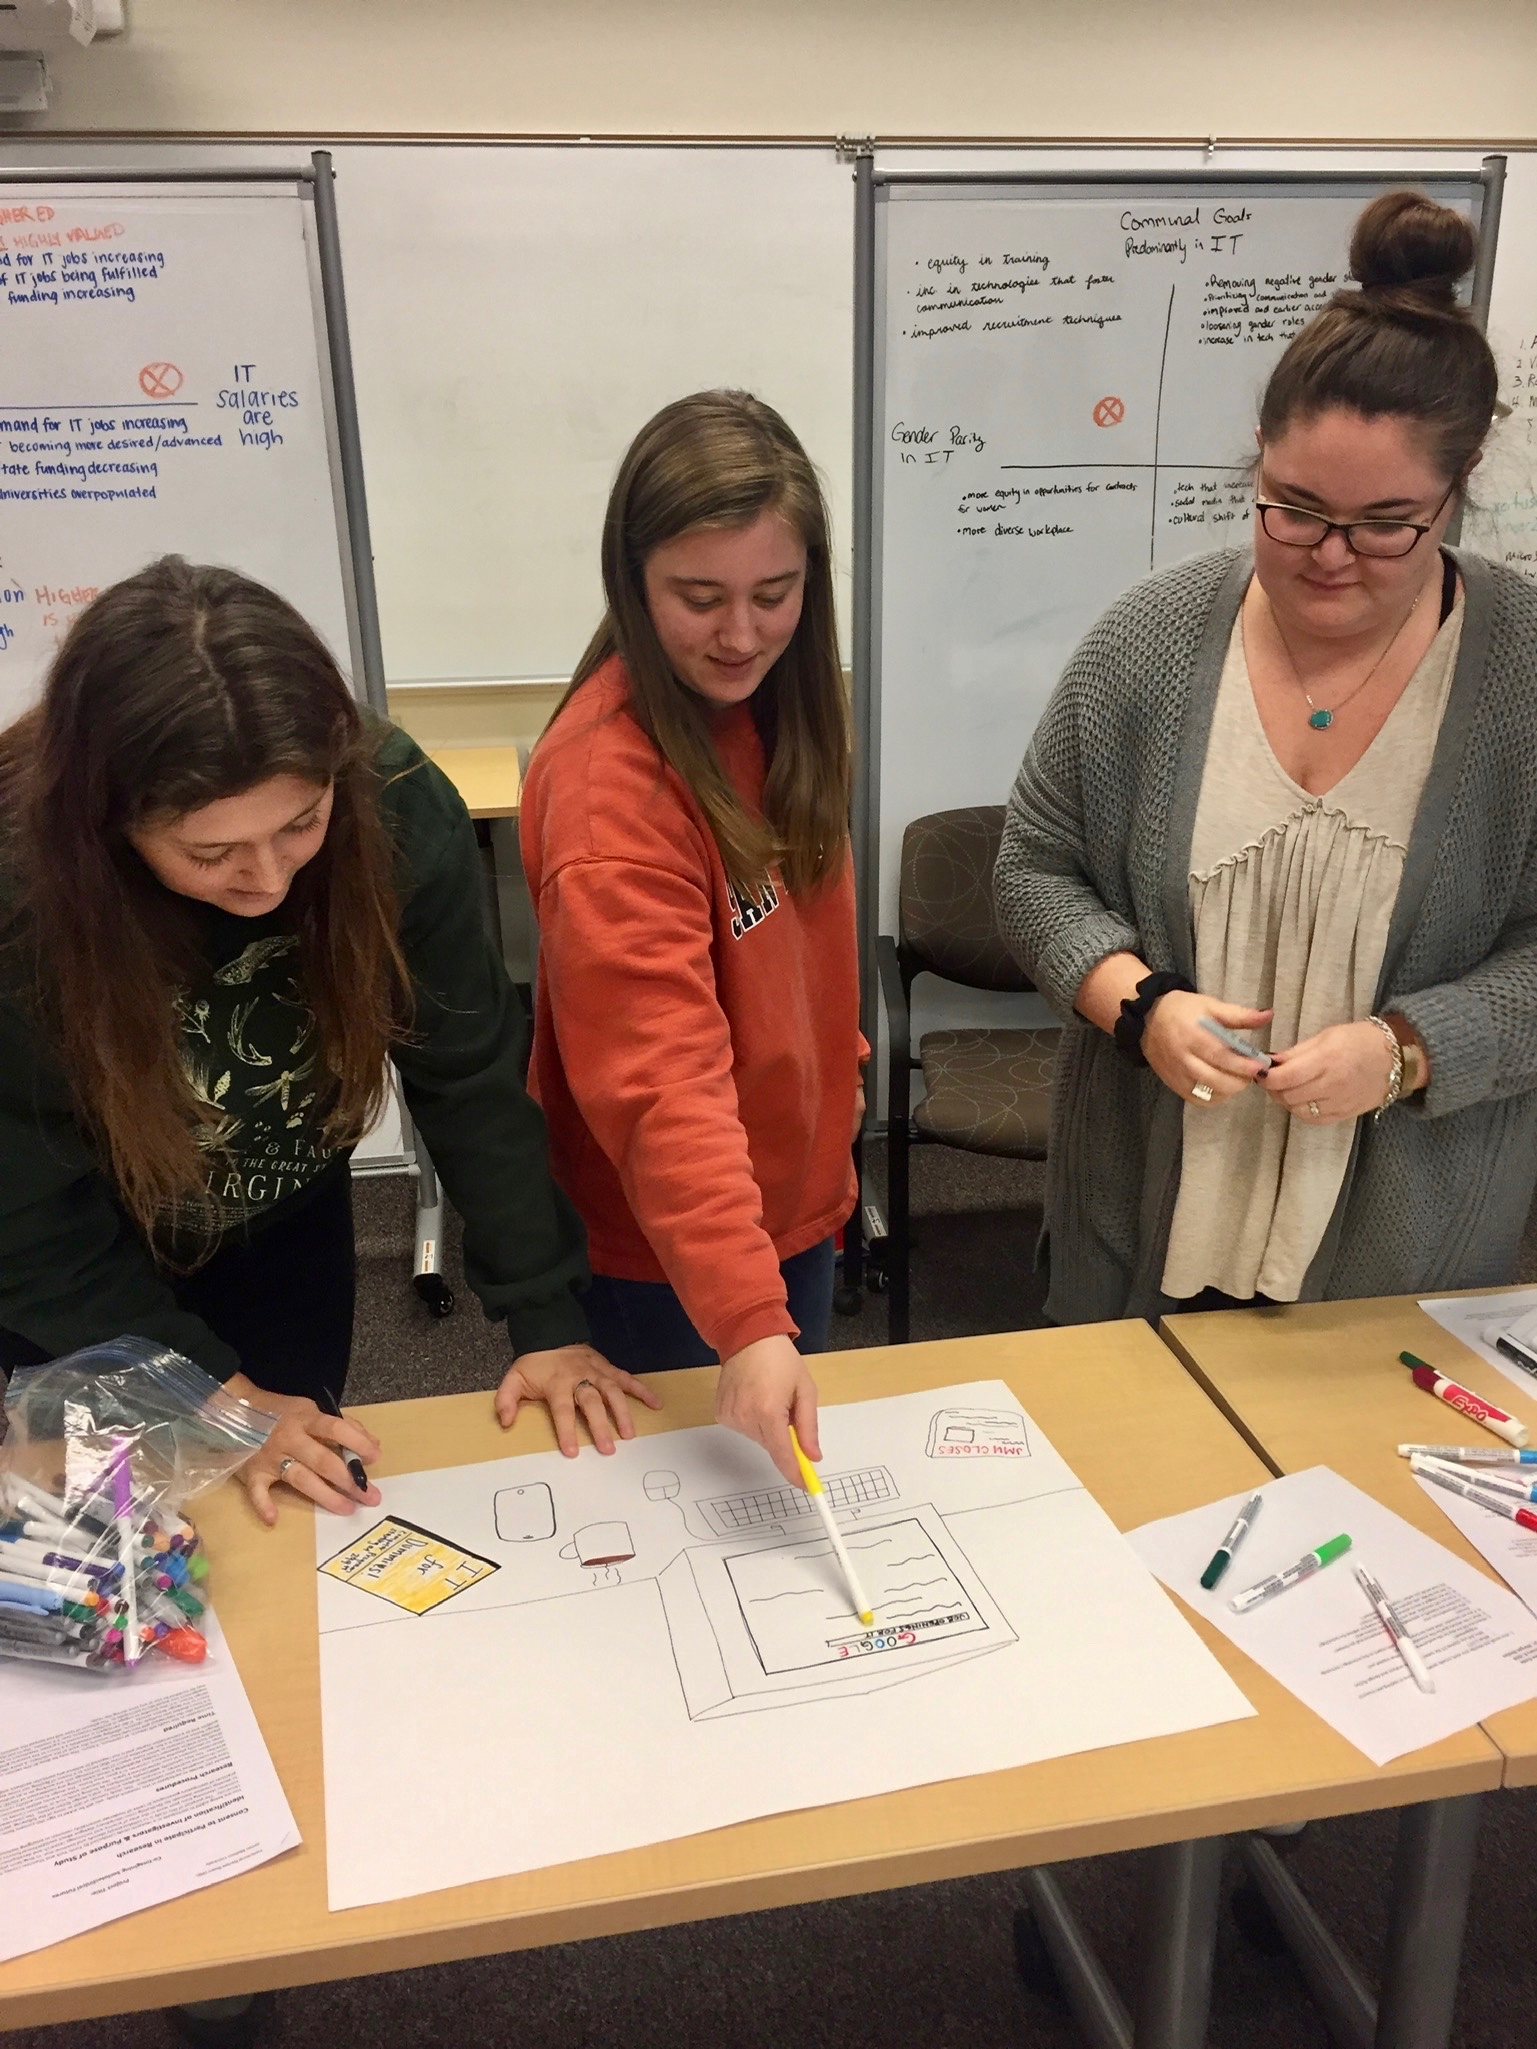 Three undergraduate student members of the STS Futures Lab collaborate on a design fiction prototype as part of the Co-Imagining Futures workshop